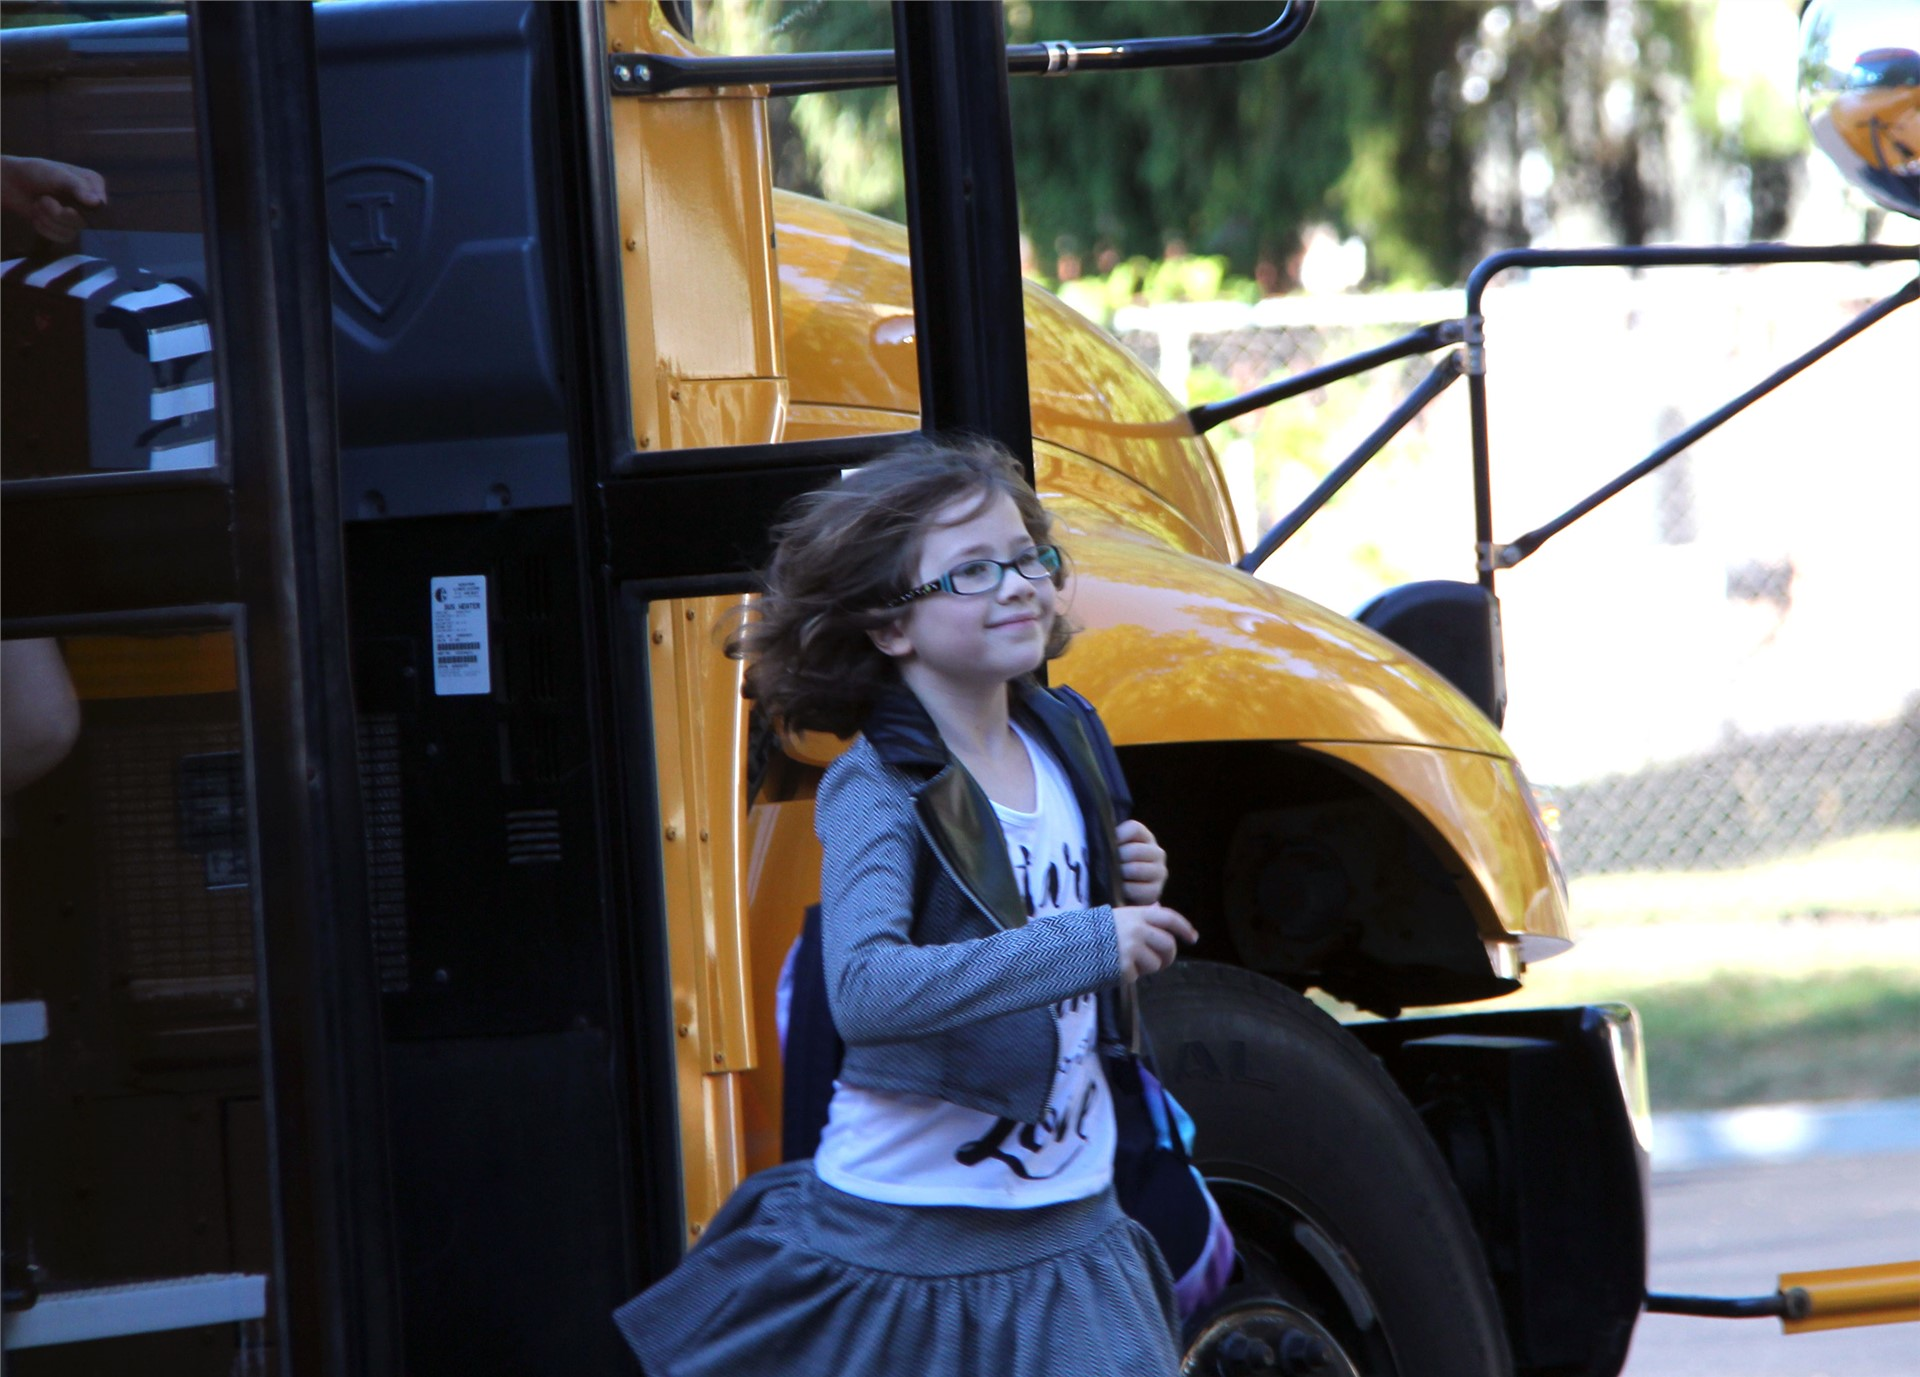 student smiling exiting school bus